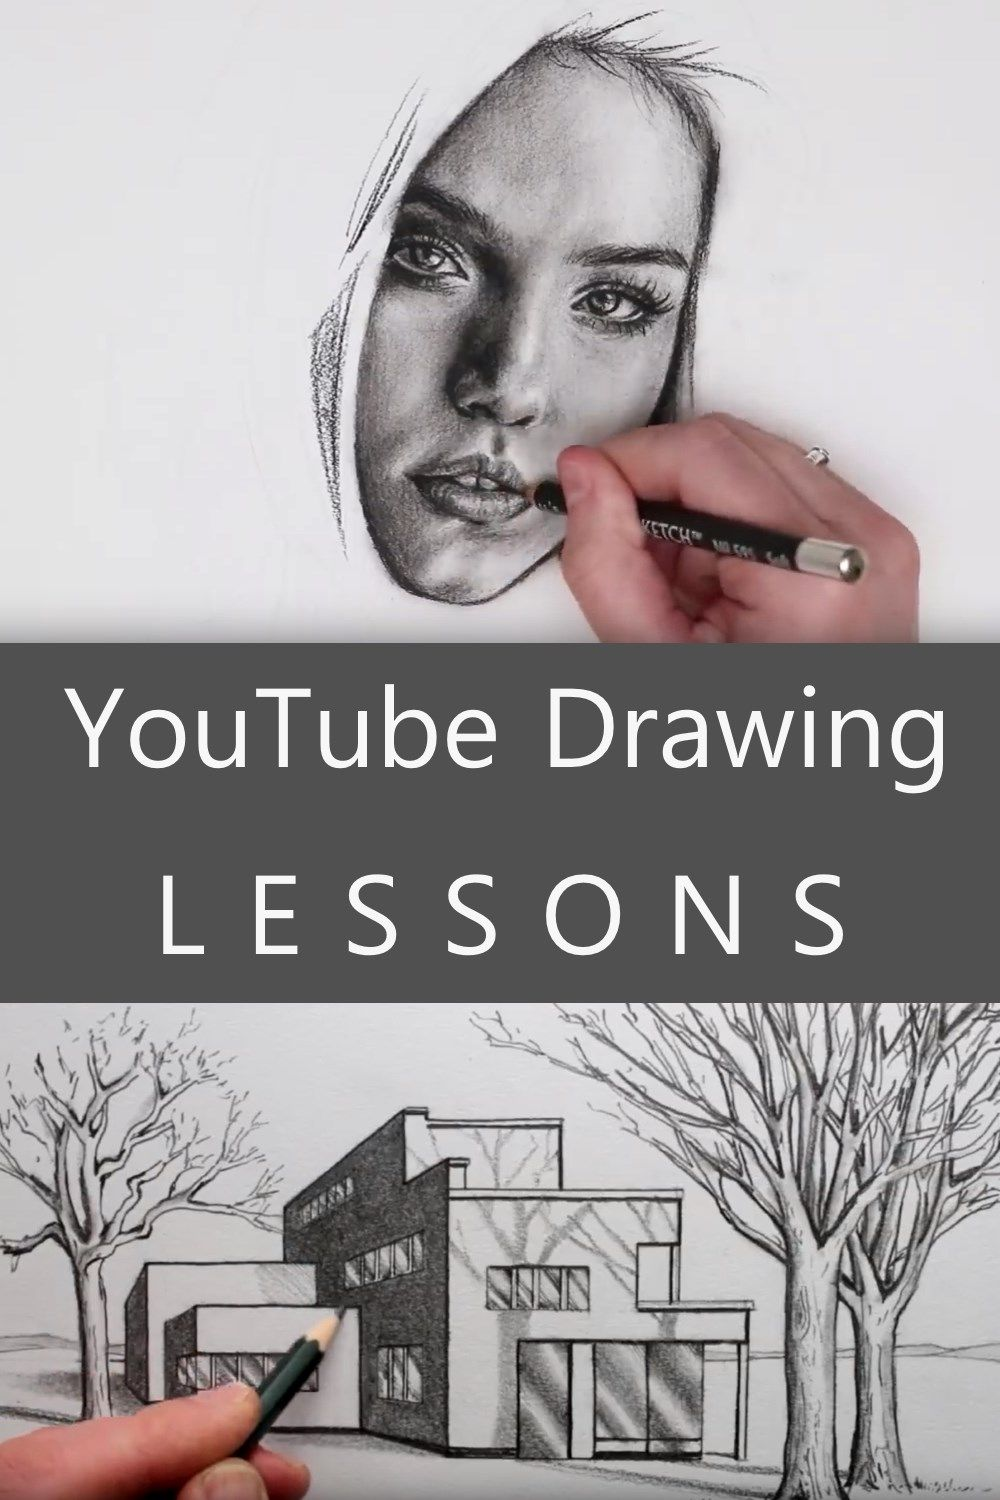 Youtube Channels For Learning To Draw Top Instructors And Classes